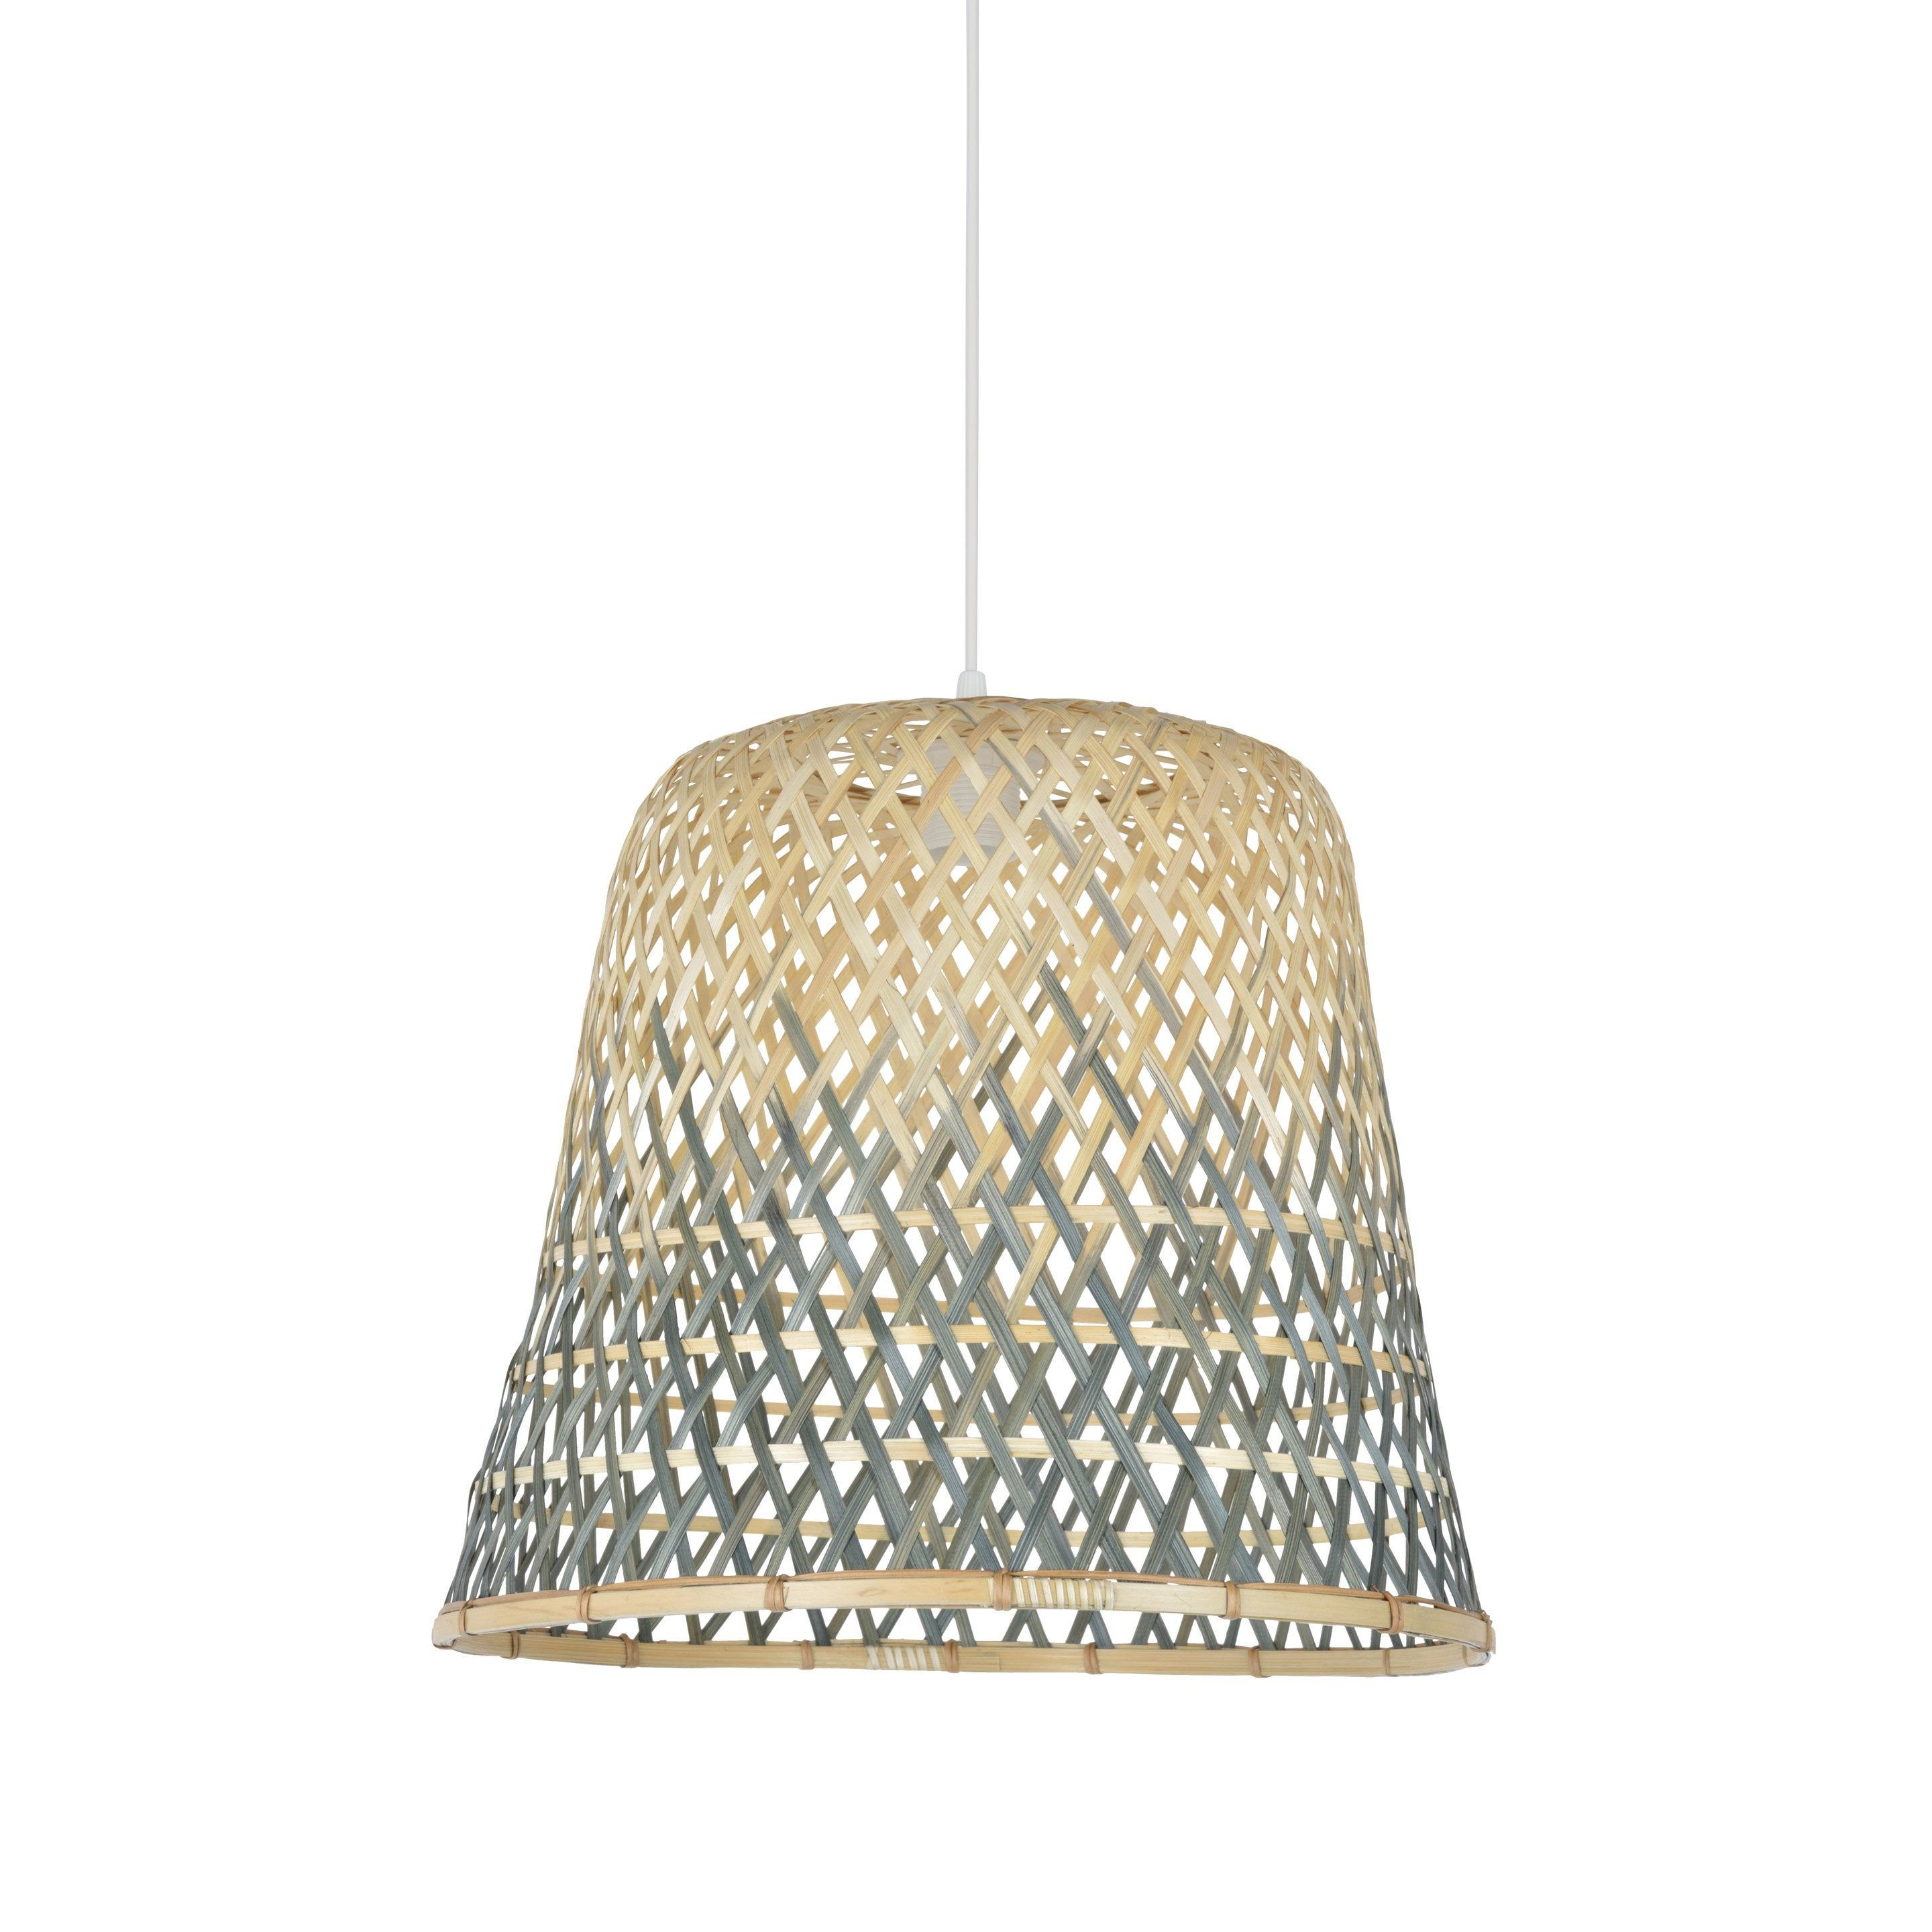 Suspension Nature Bambou Naturel Gris Corep Macao 1